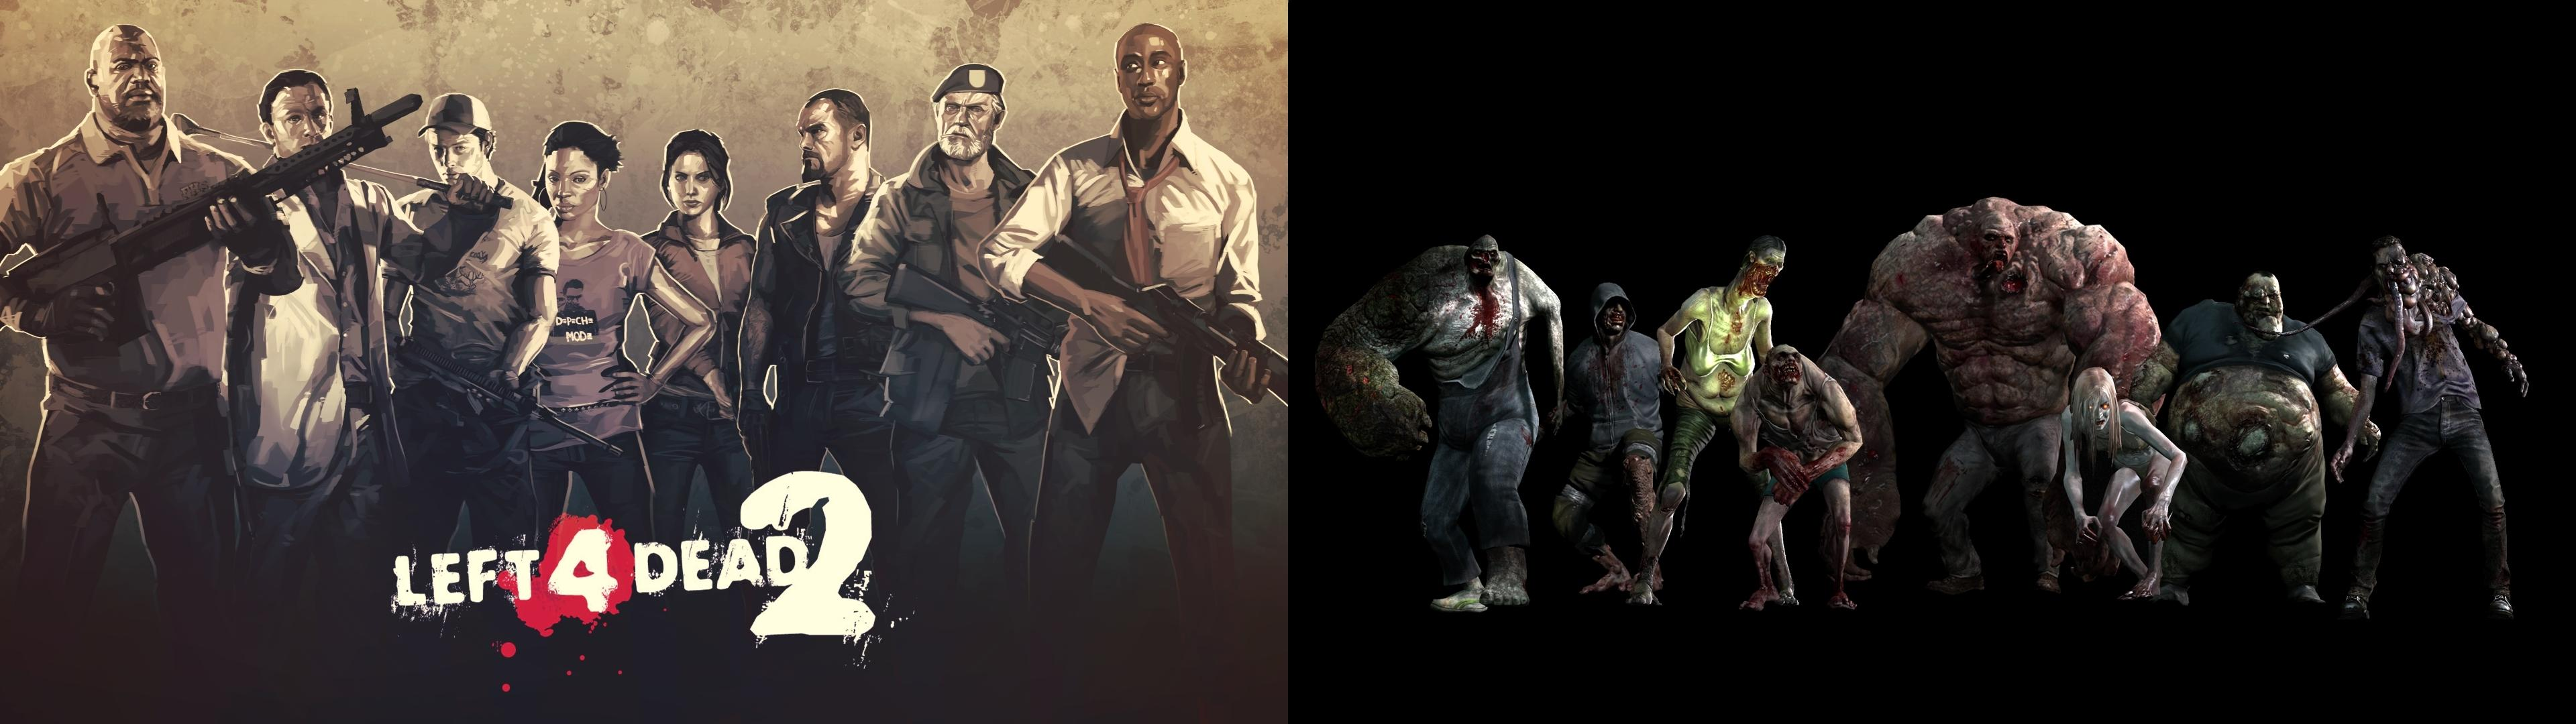 I Made A Dual Monitor Left 4 Dead 2 Wallpaper Because Left 4